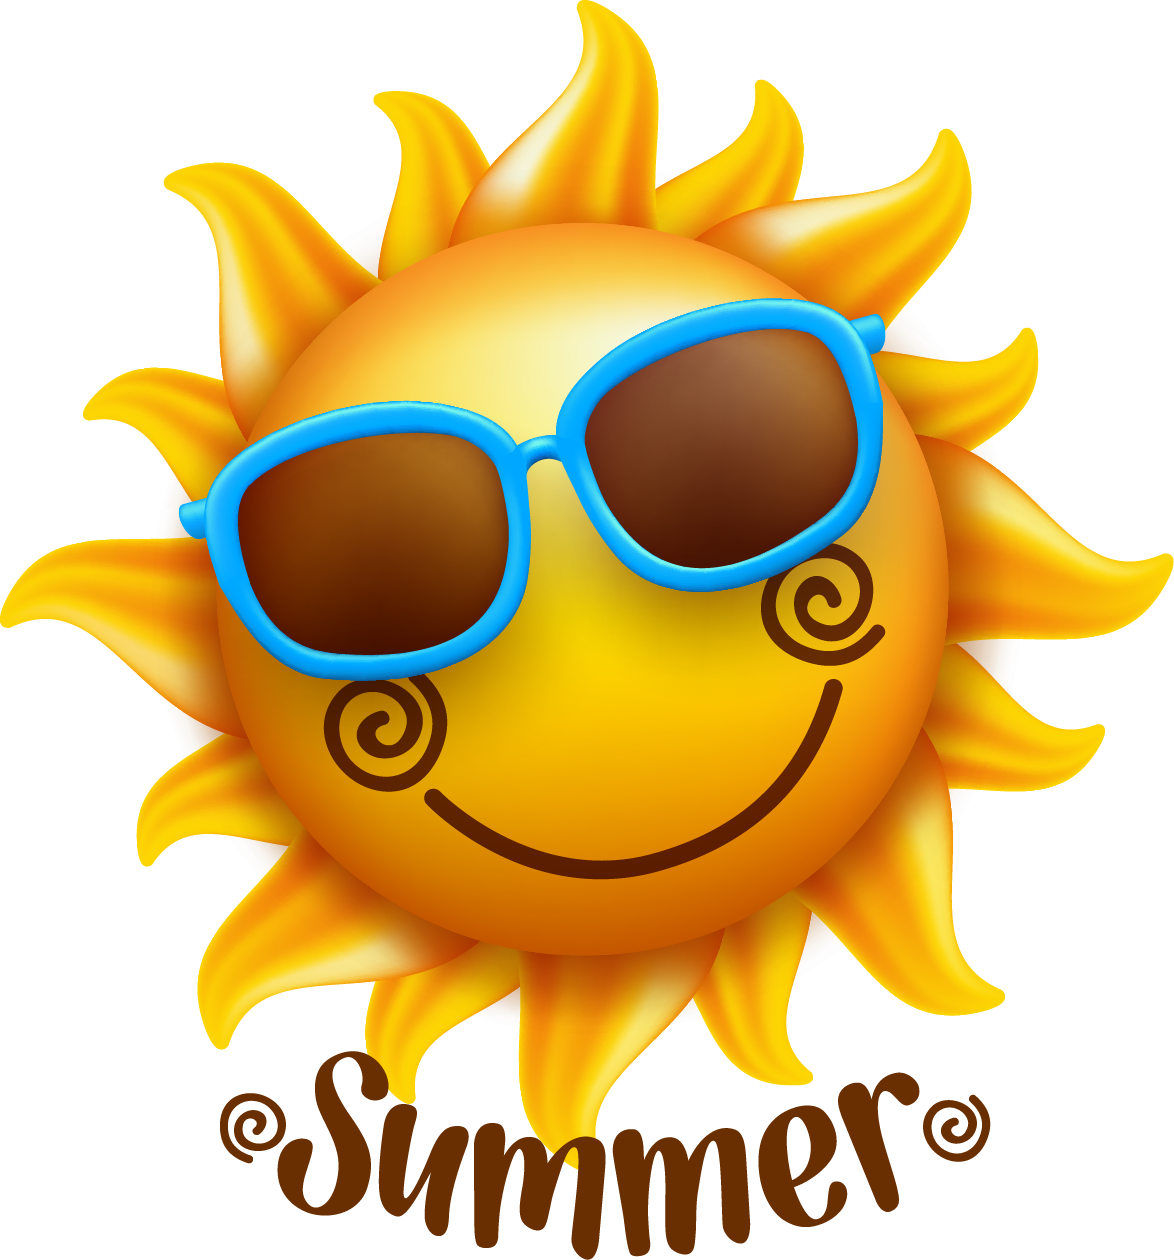 Smiley face sun clipart transparent Smiley Face Illustration - Summer sun 1174*1260 transprent Png Free ... transparent